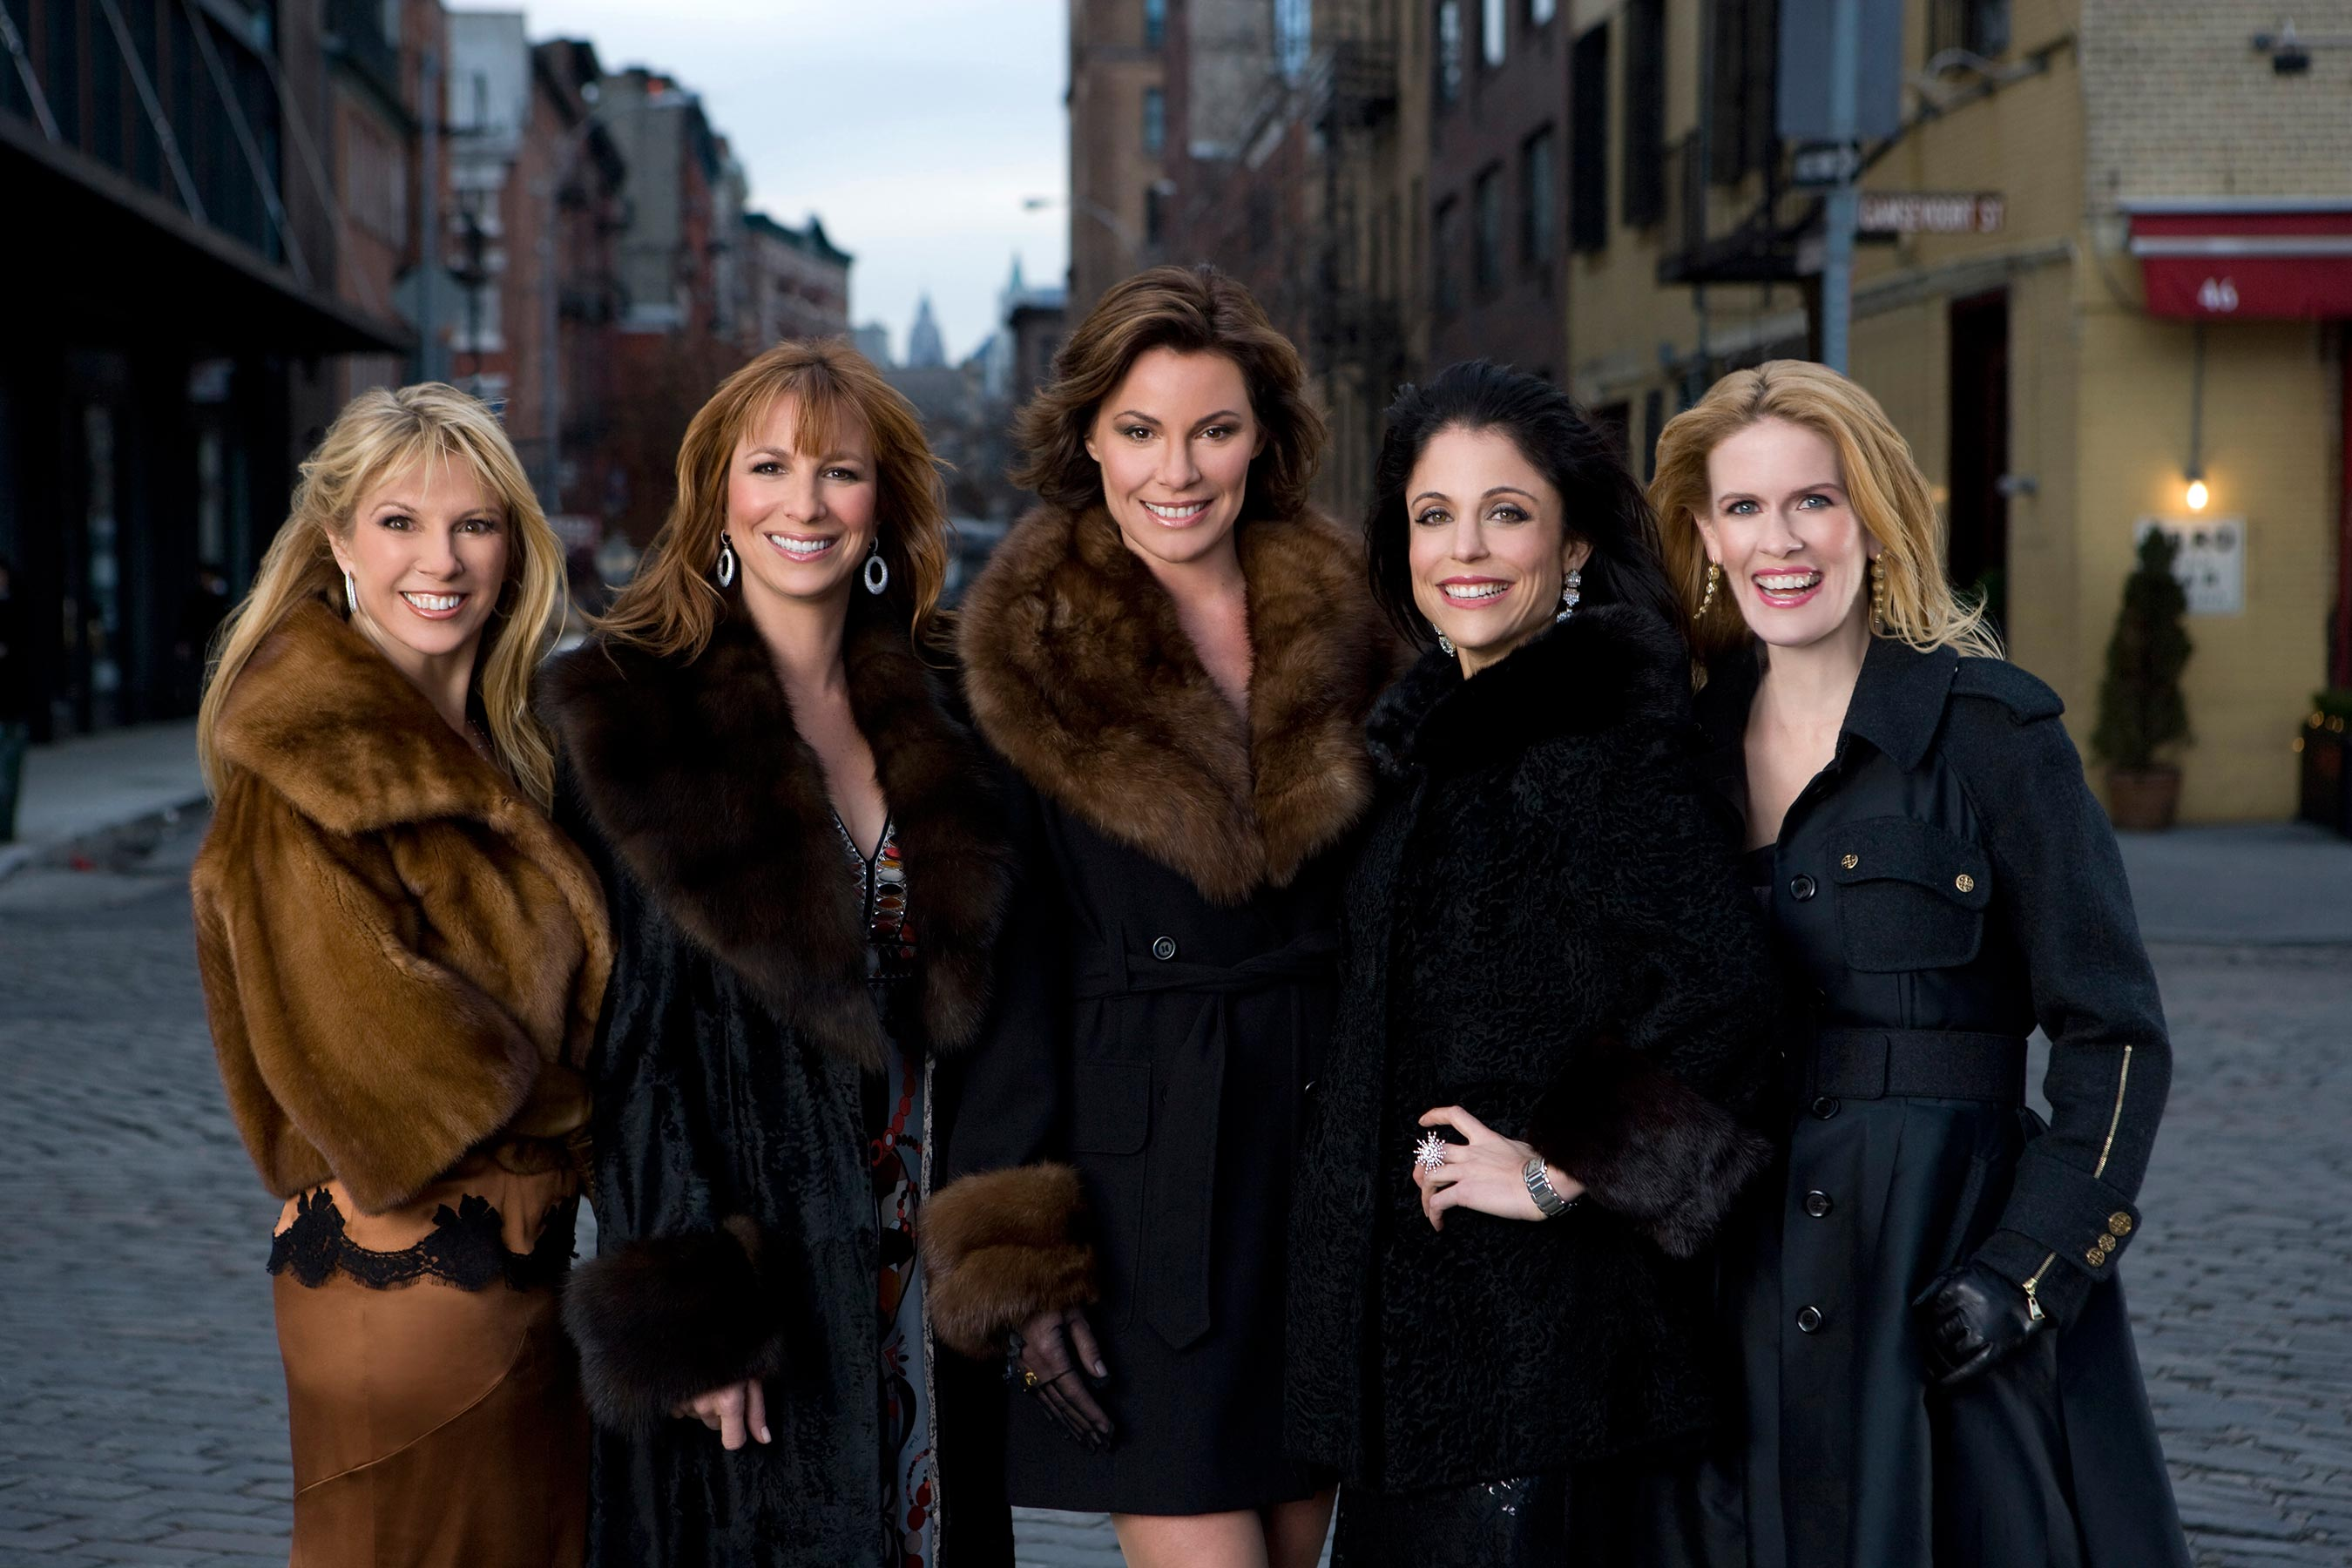 'The Real Housewives of New York City' from A to Z